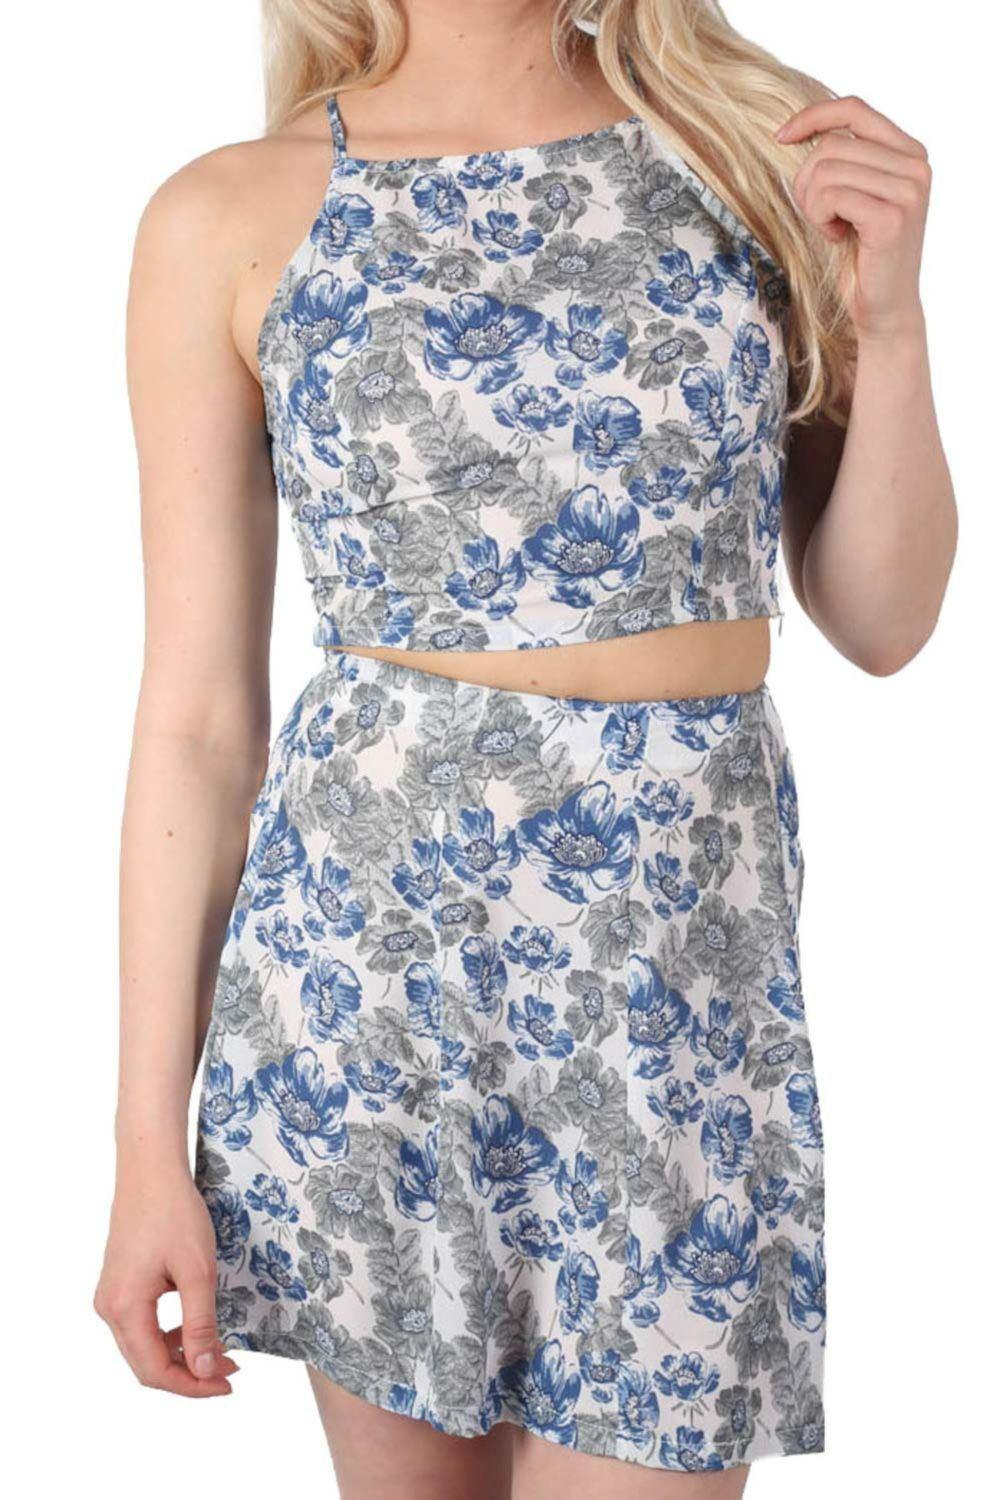 Floral Print Crop Top in Blue